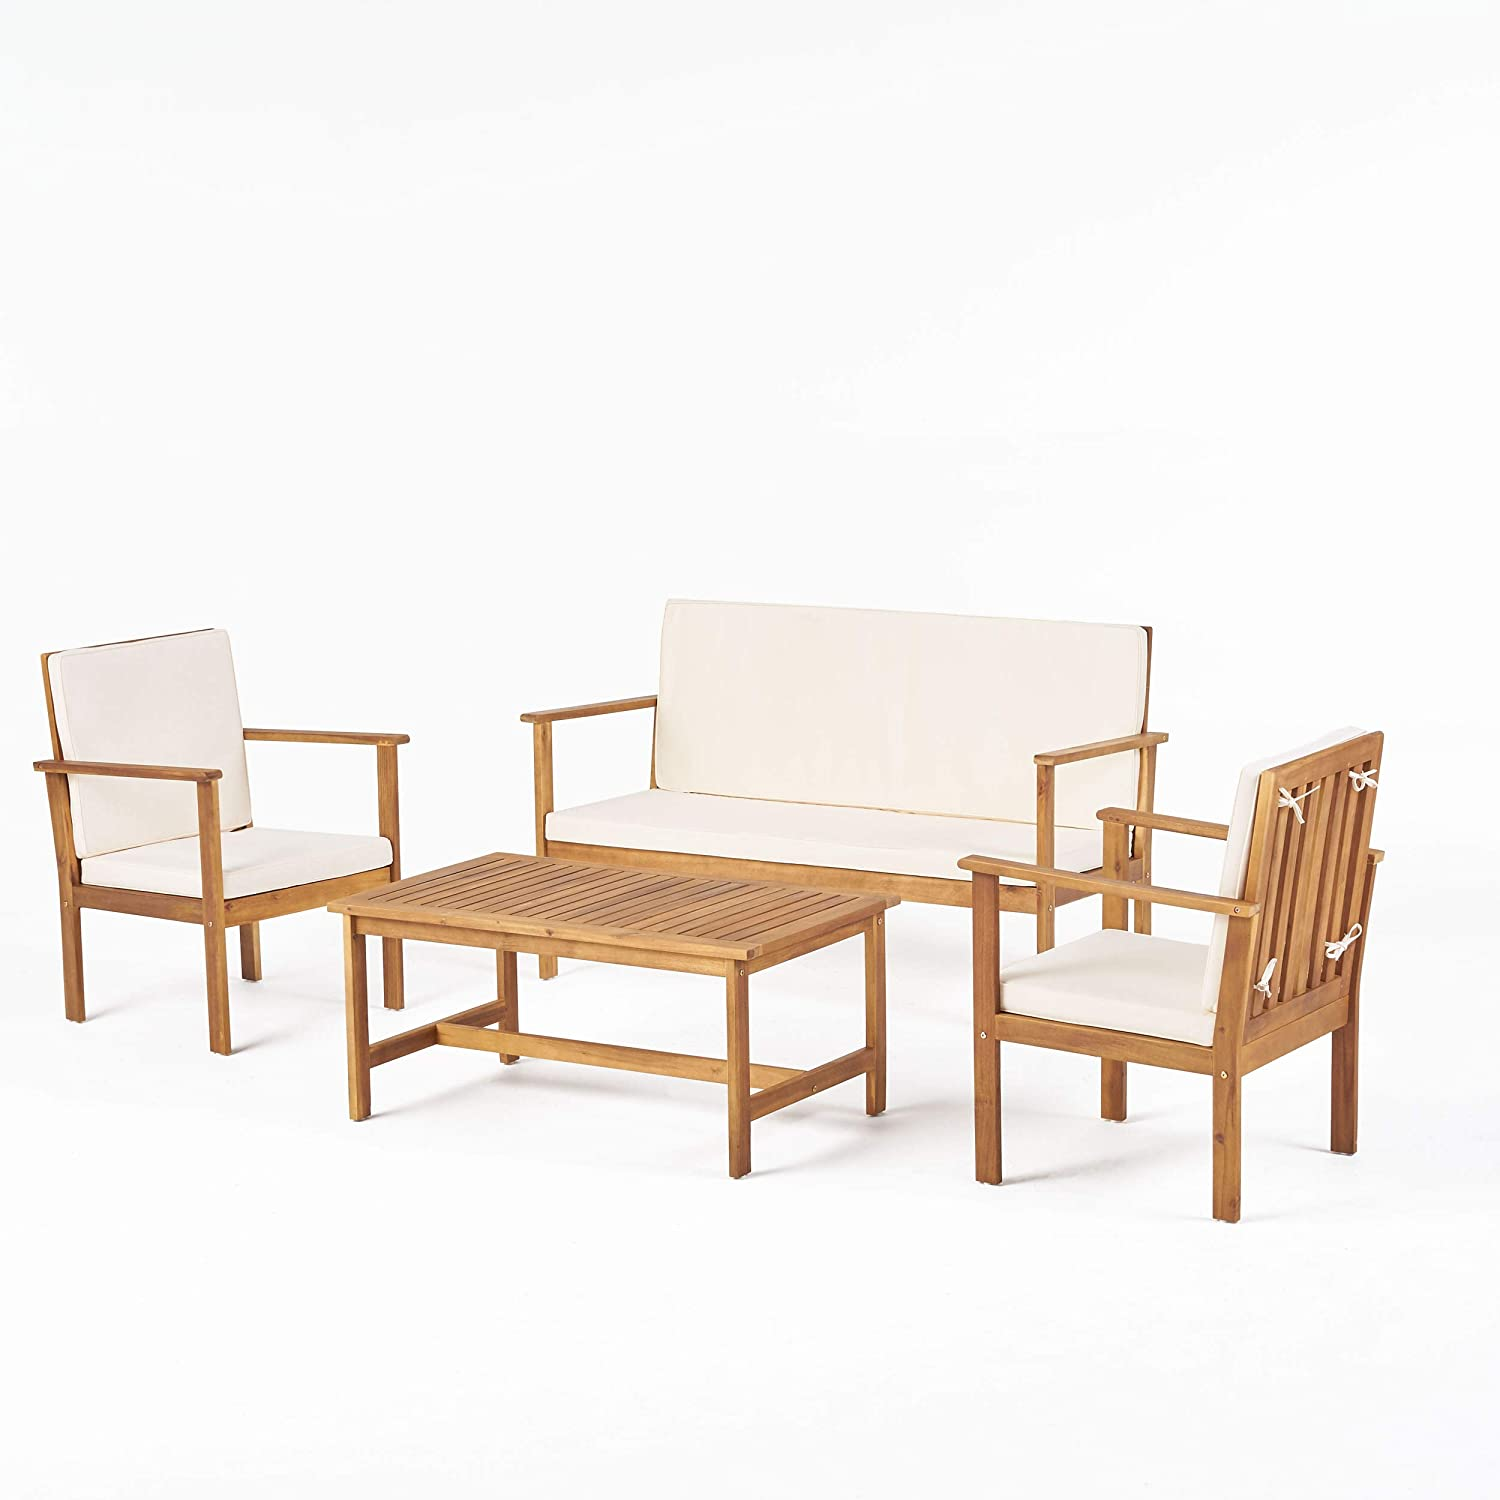 Christopher Knight Home Luciano Outdoor Chat Set, 4-Pcs Set, Brown Patina